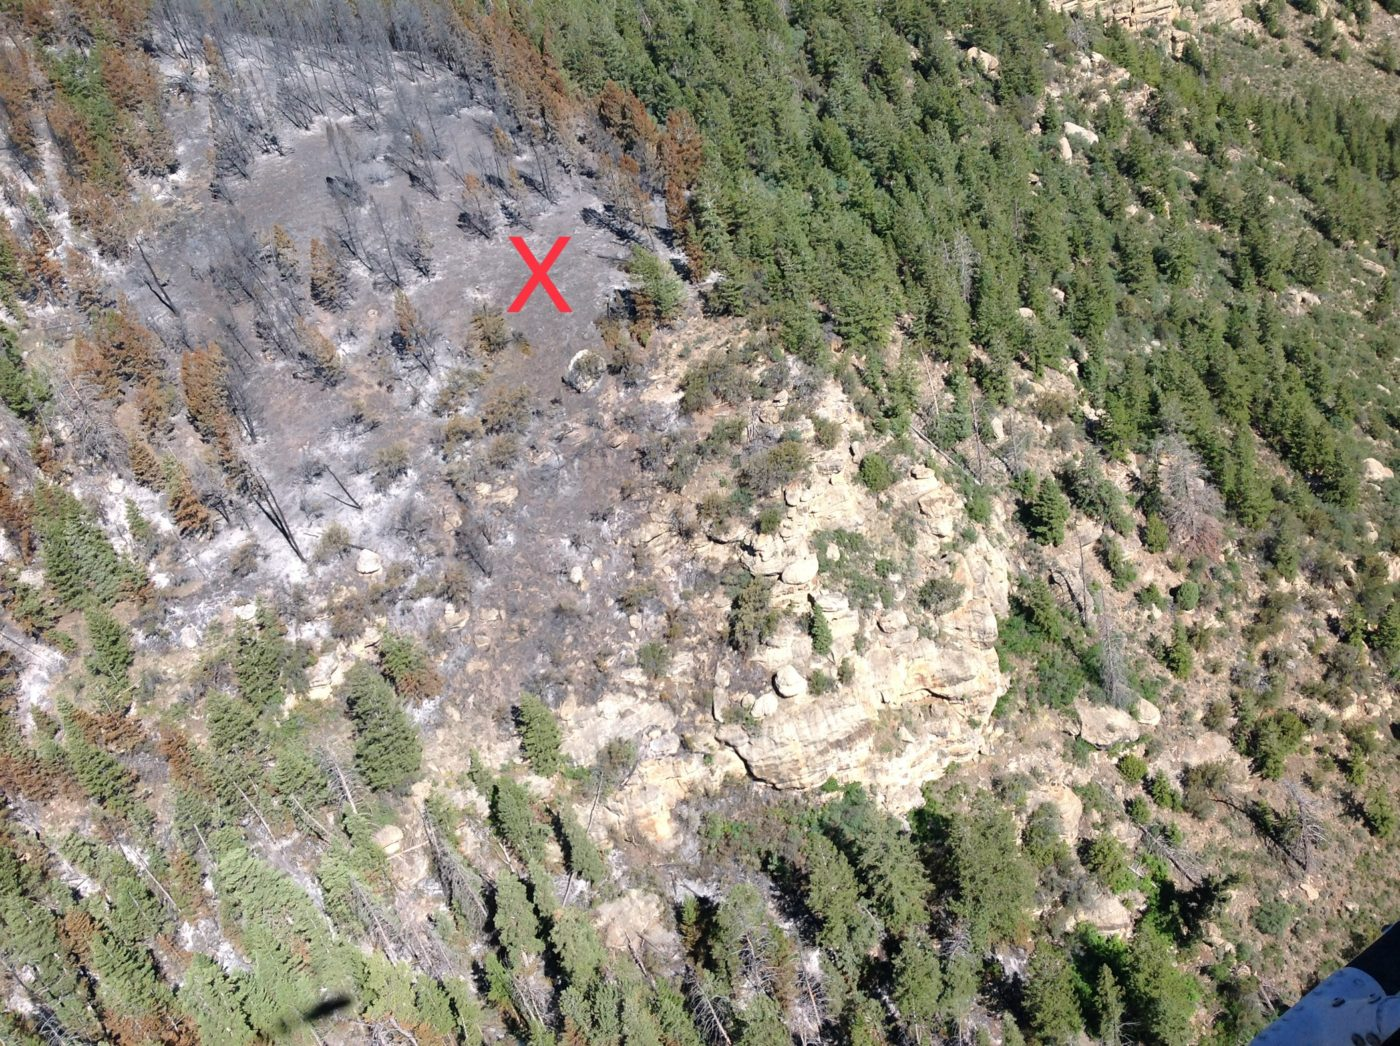 The rugged mountainous terrain from which the firefighter was evacuated